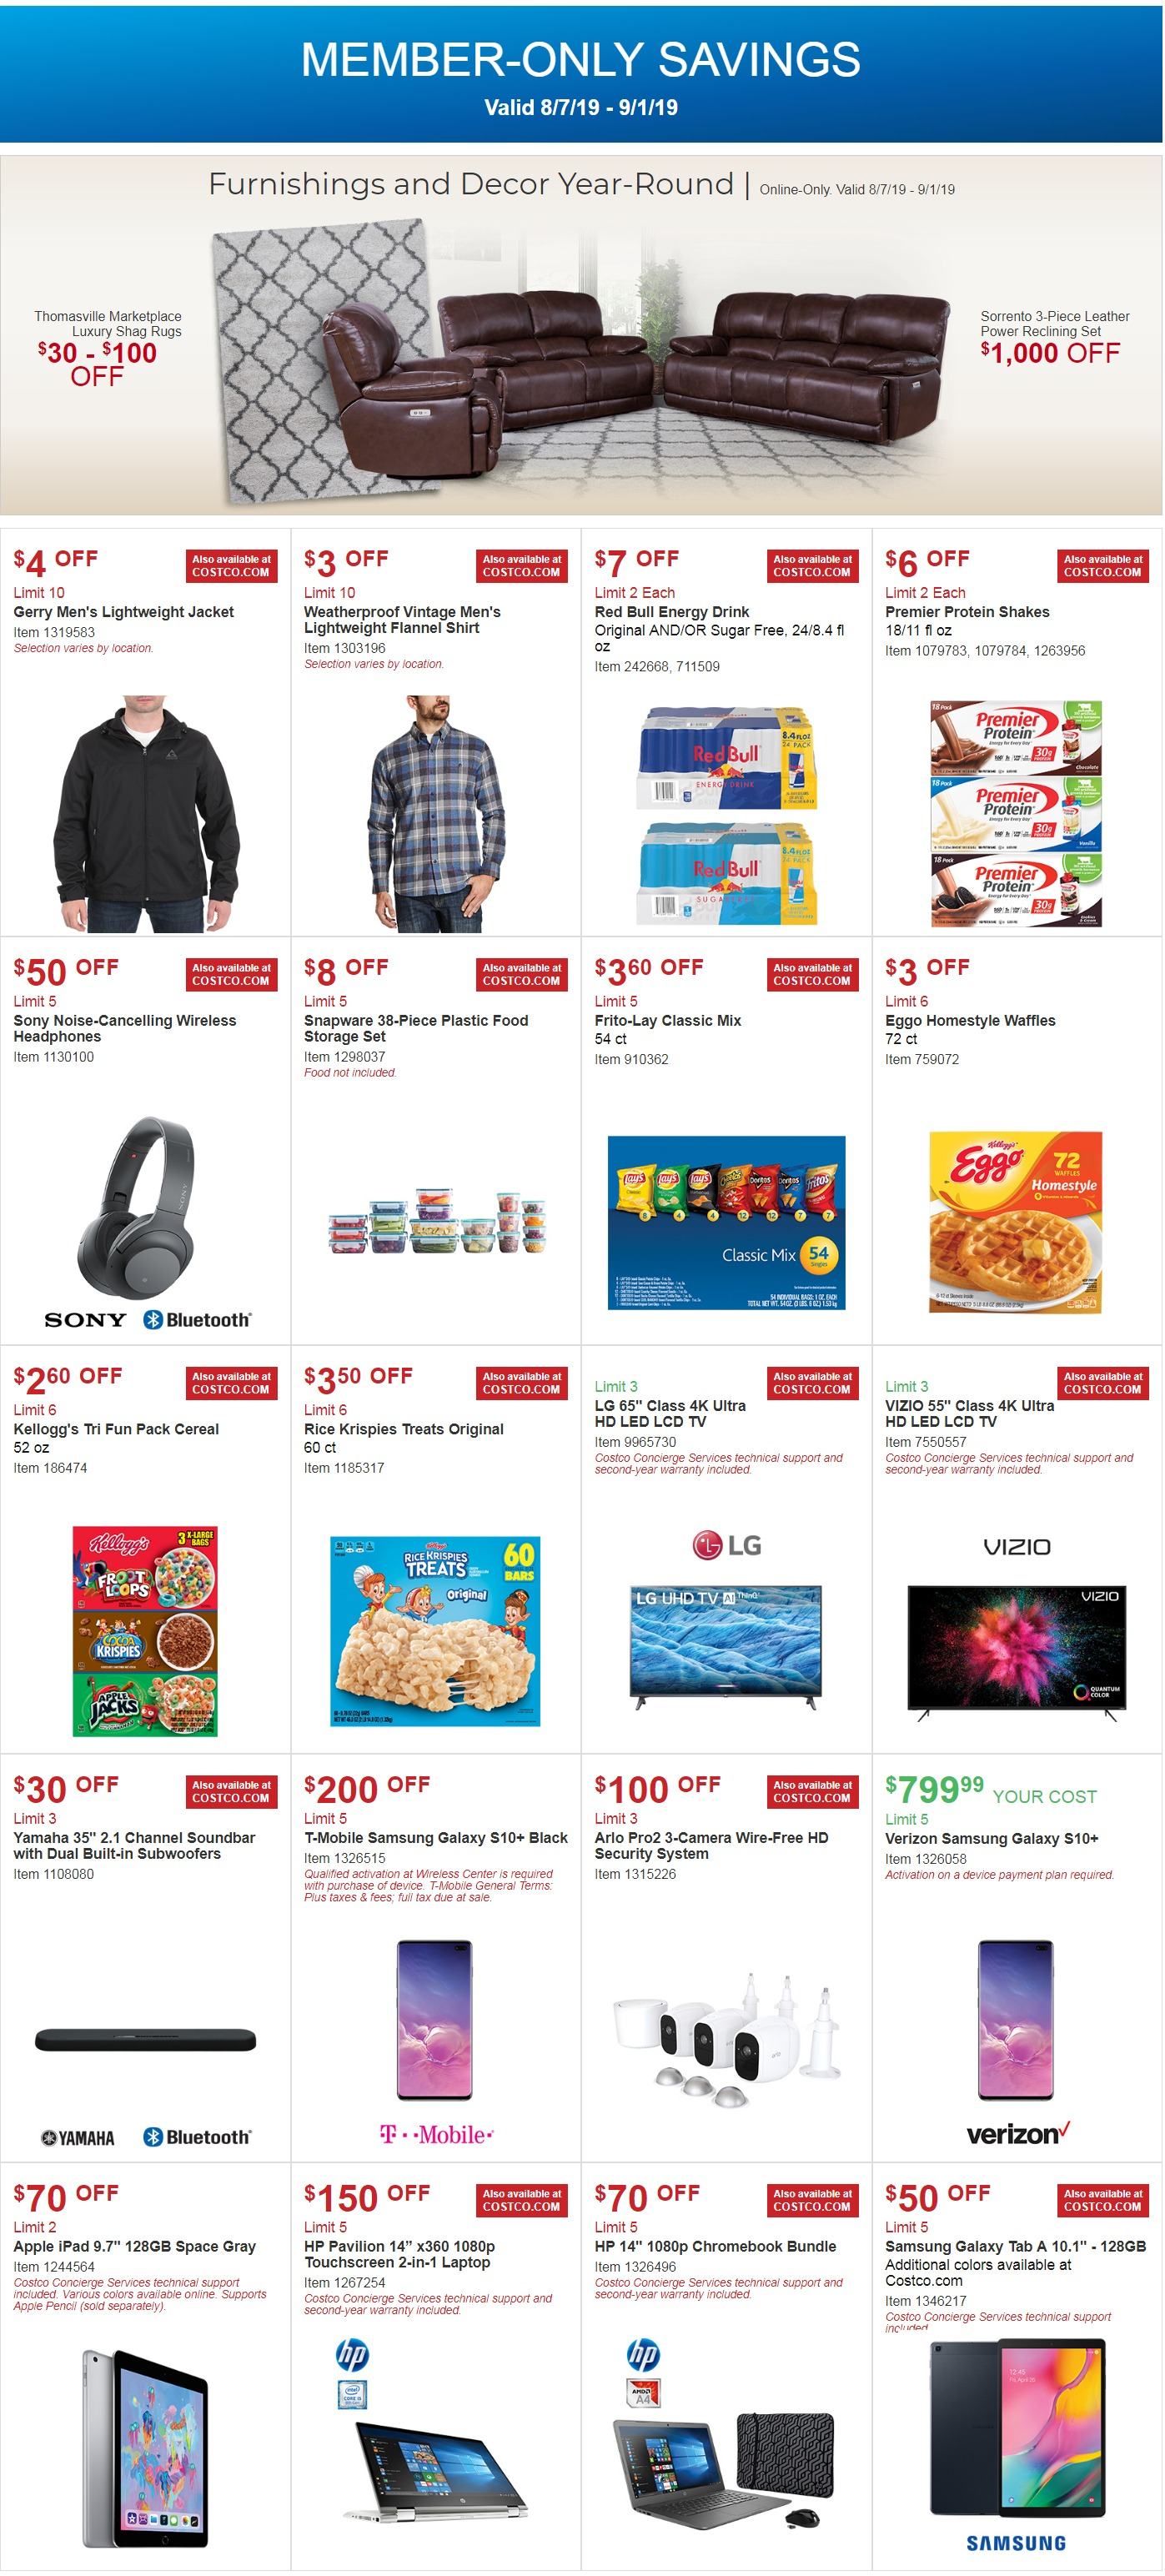 Costco Coupon Offers August 7 - September 1, 2019